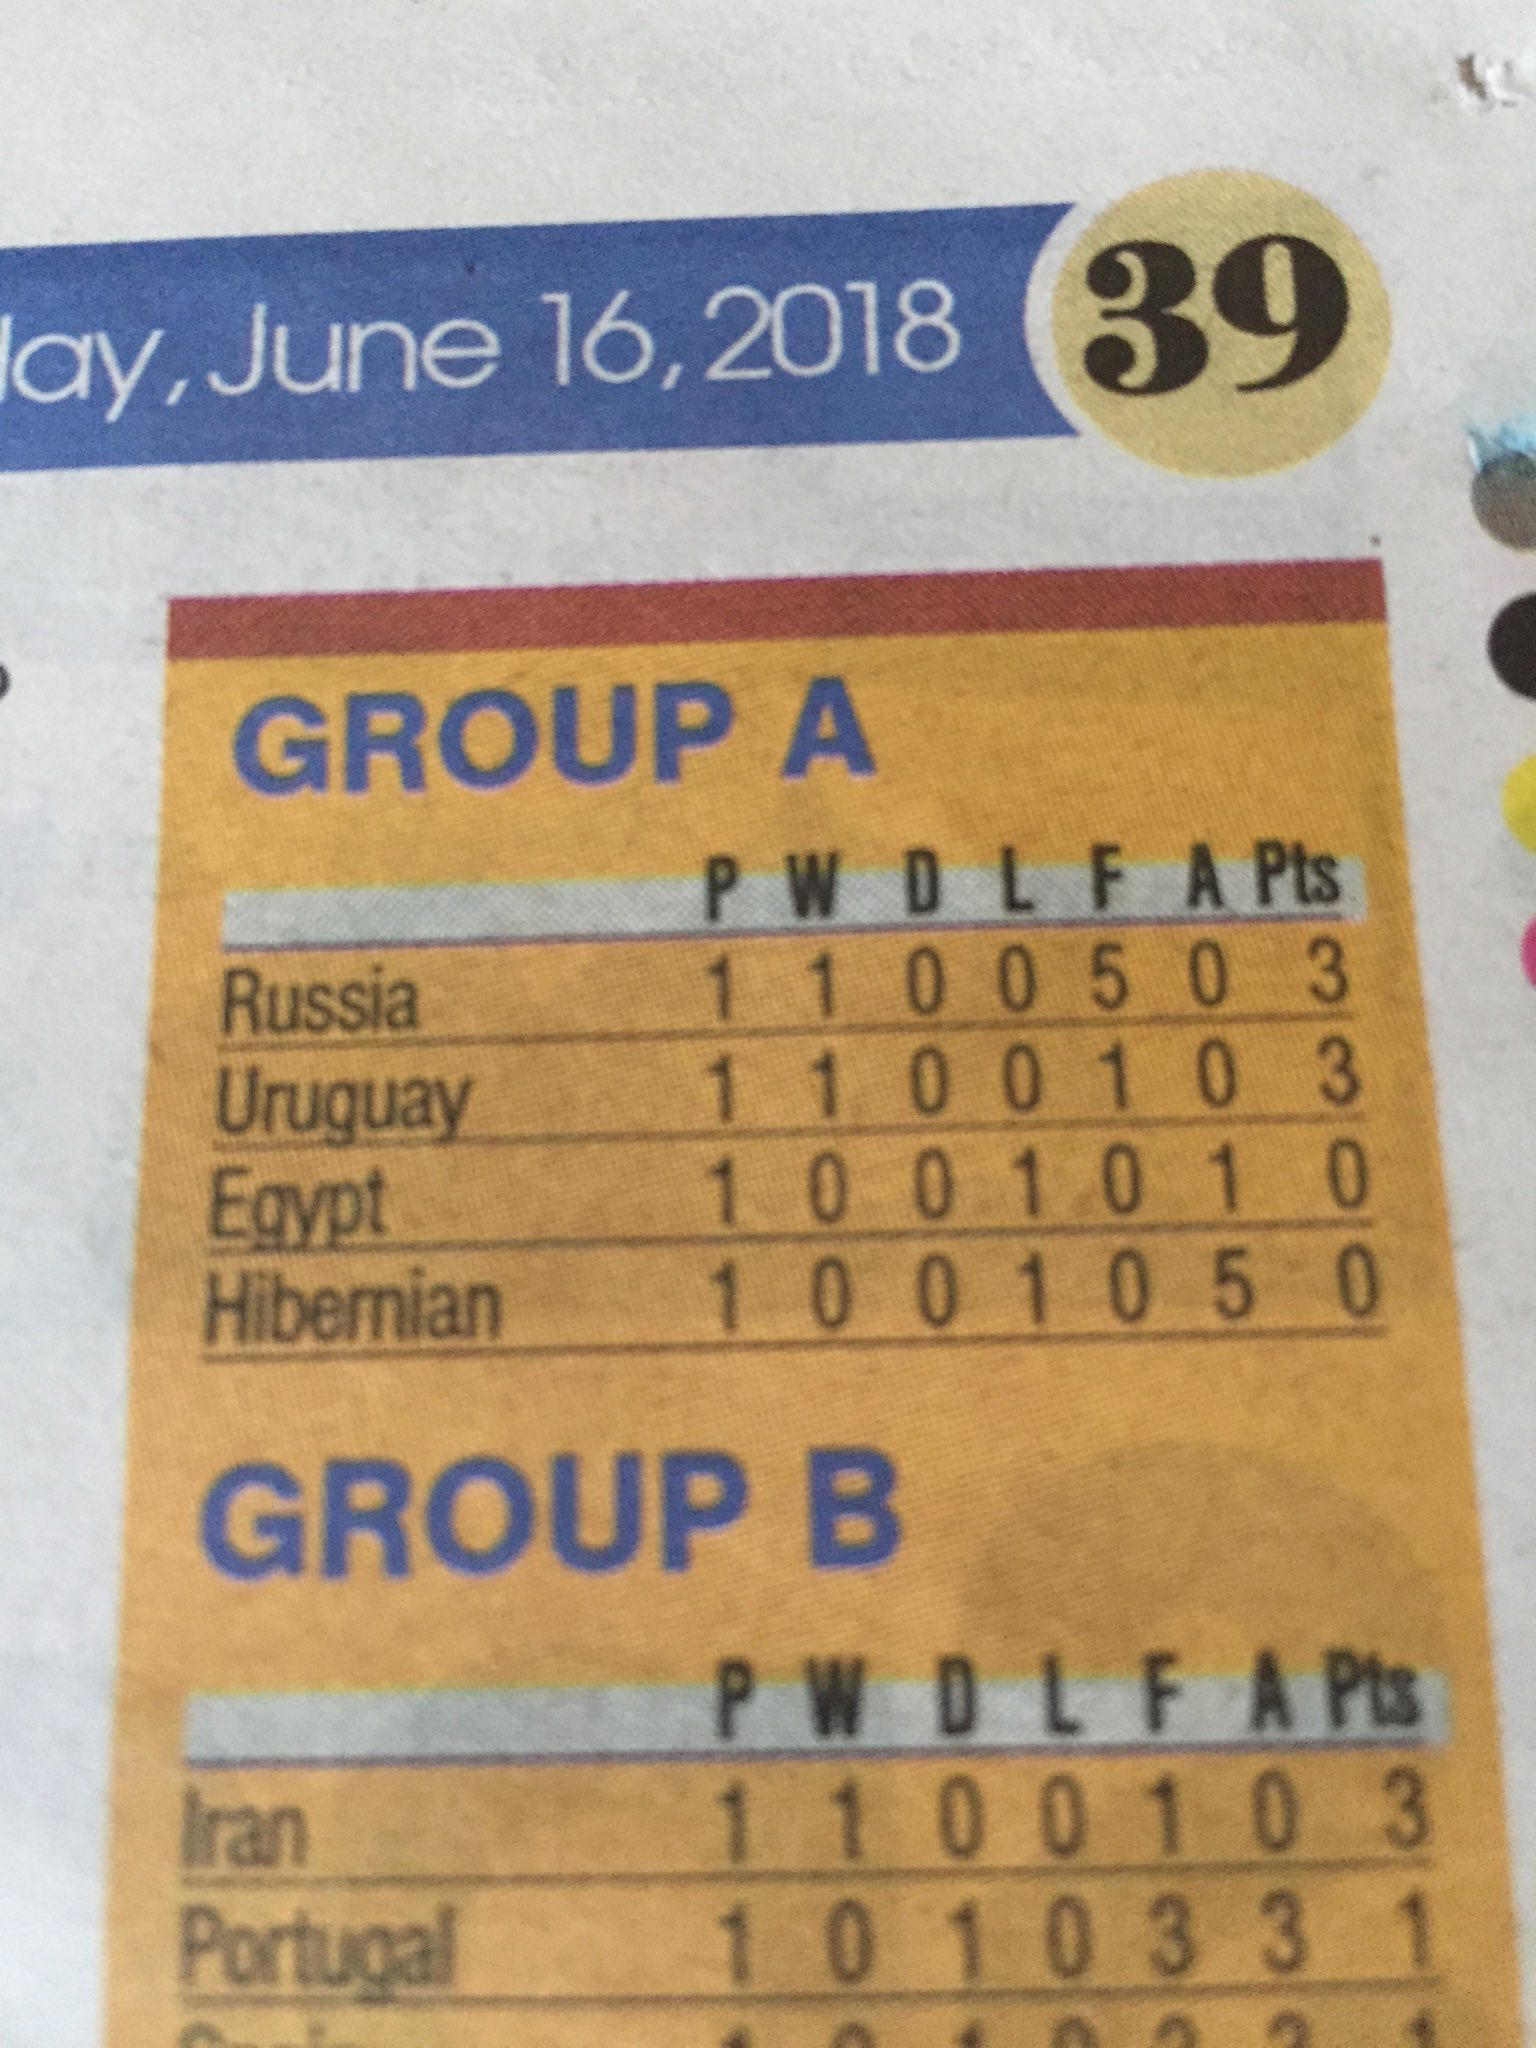 The Great GNamer Forum 2018 FIFA World Cup Sweepstake: Jimbob Wins, Thanks For Playing! - Page 3 IMG_20180616_102805.jpg.5595fd5c6ec82799ff0f5e8da1d4328c